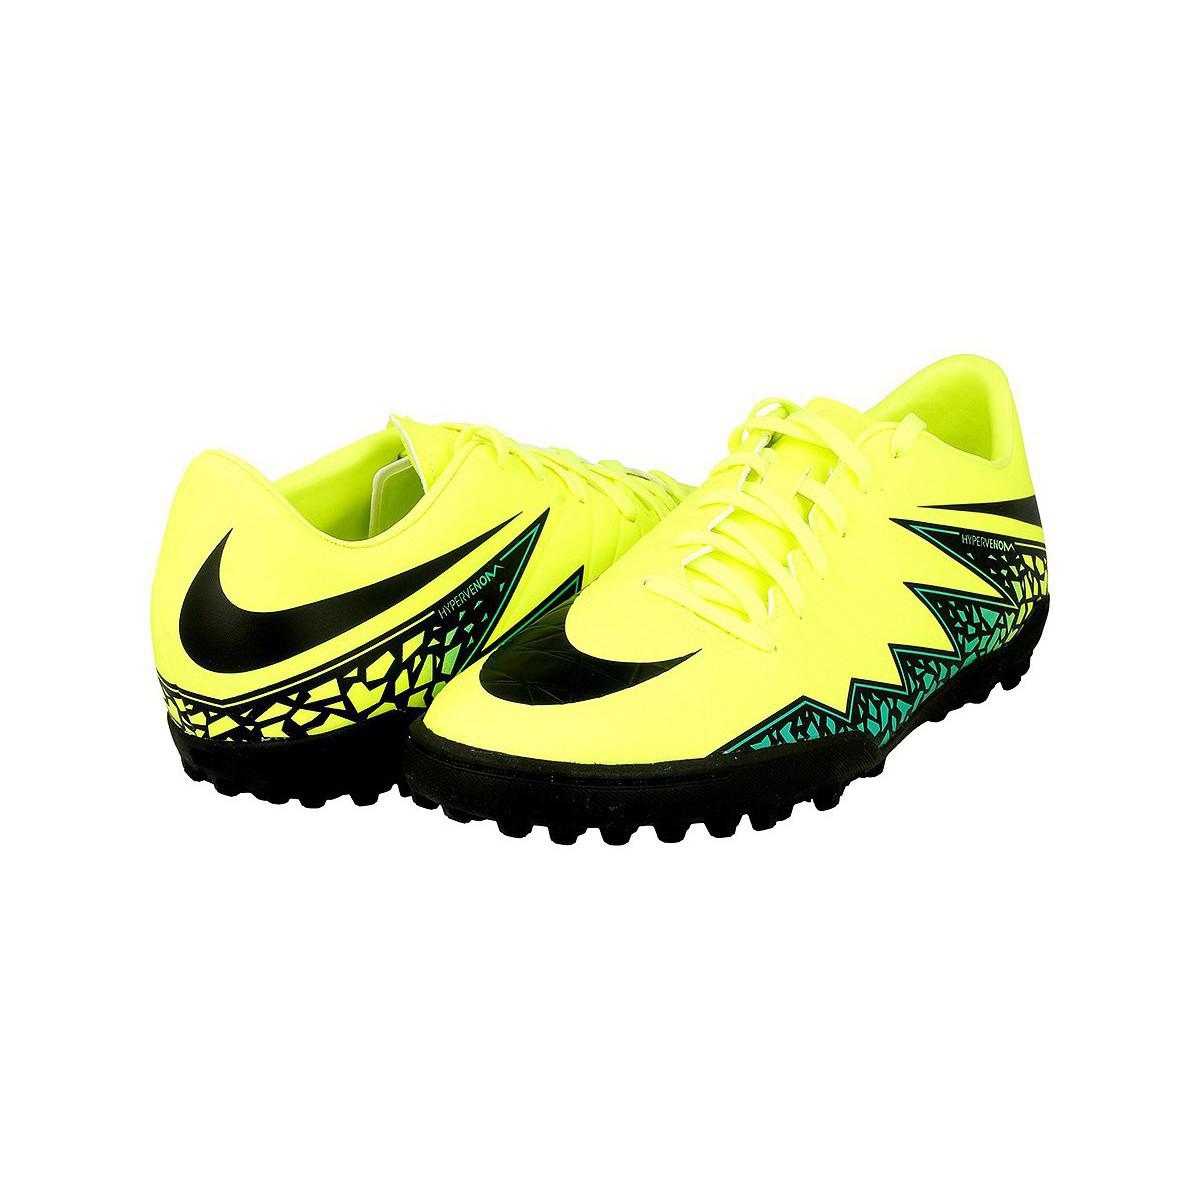 09da72ba7 Nike Hypervenom Phelon Ii Tf Men's Football Boots In Yellow in ...